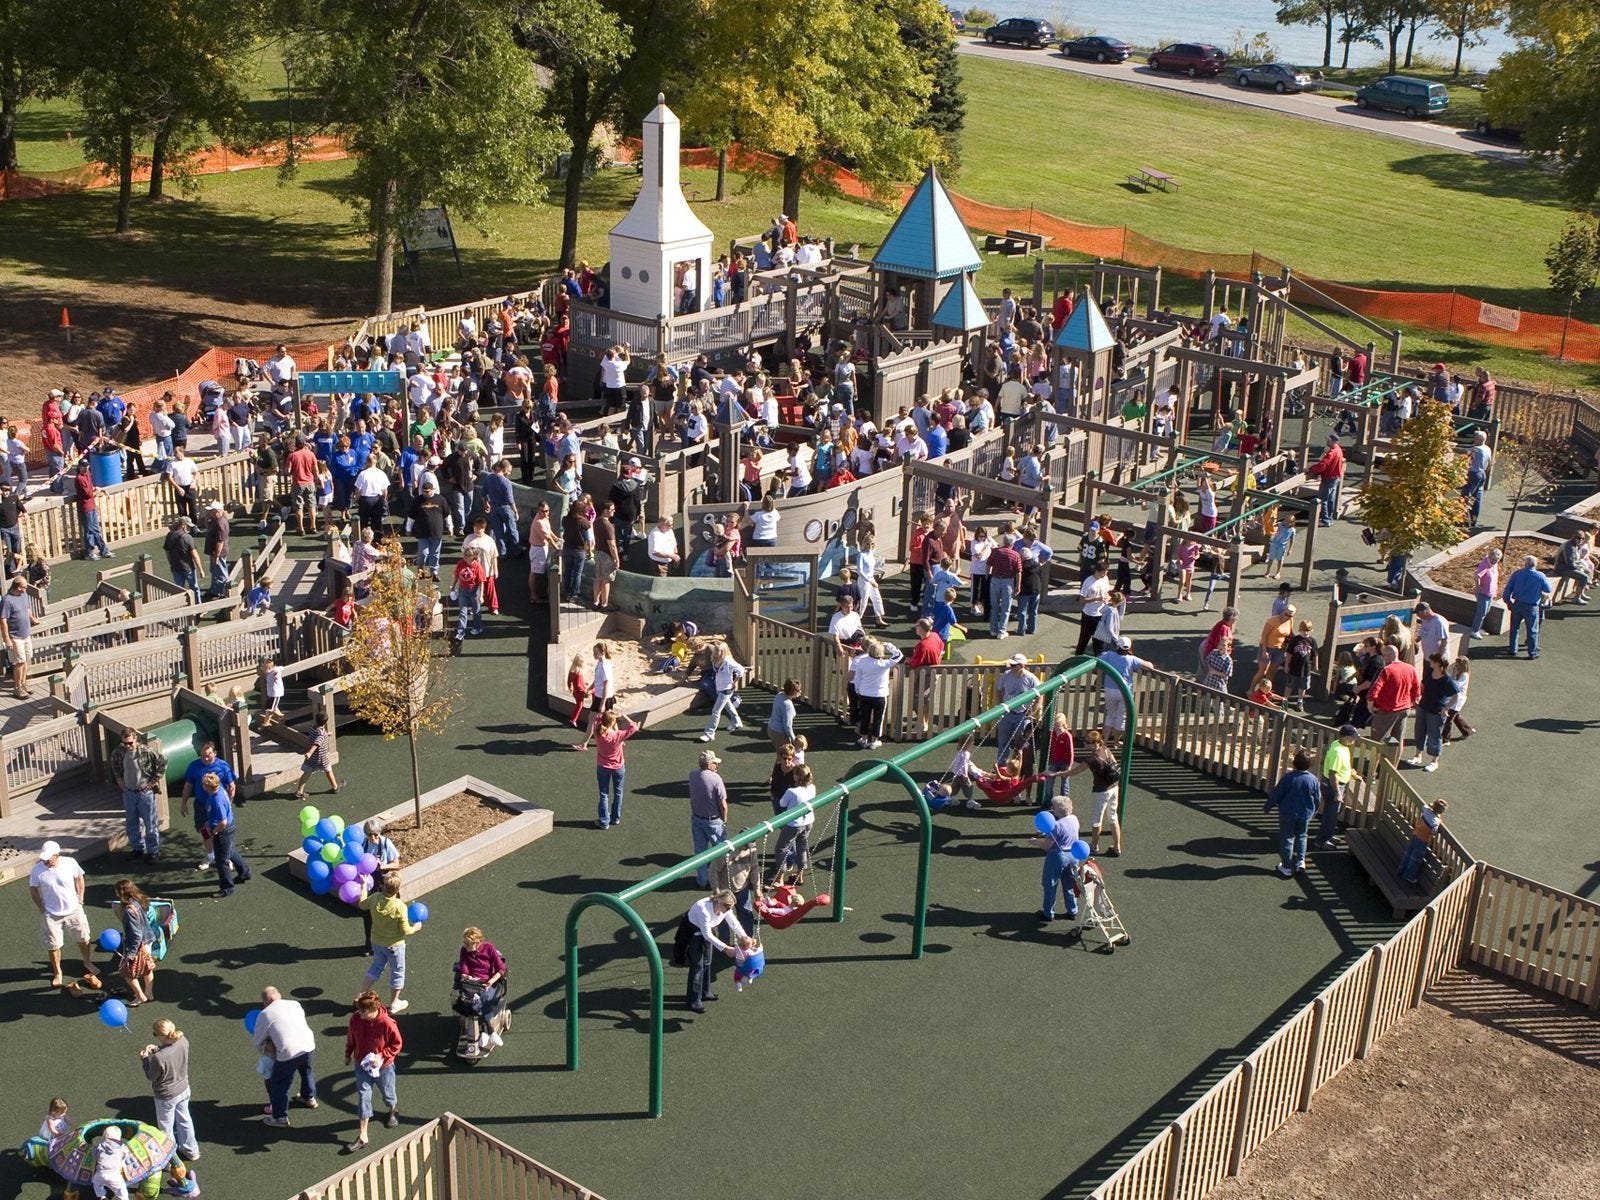 Kids with disabilities and without disabilities enjoy playing at Possibility Playground in Port Washington.